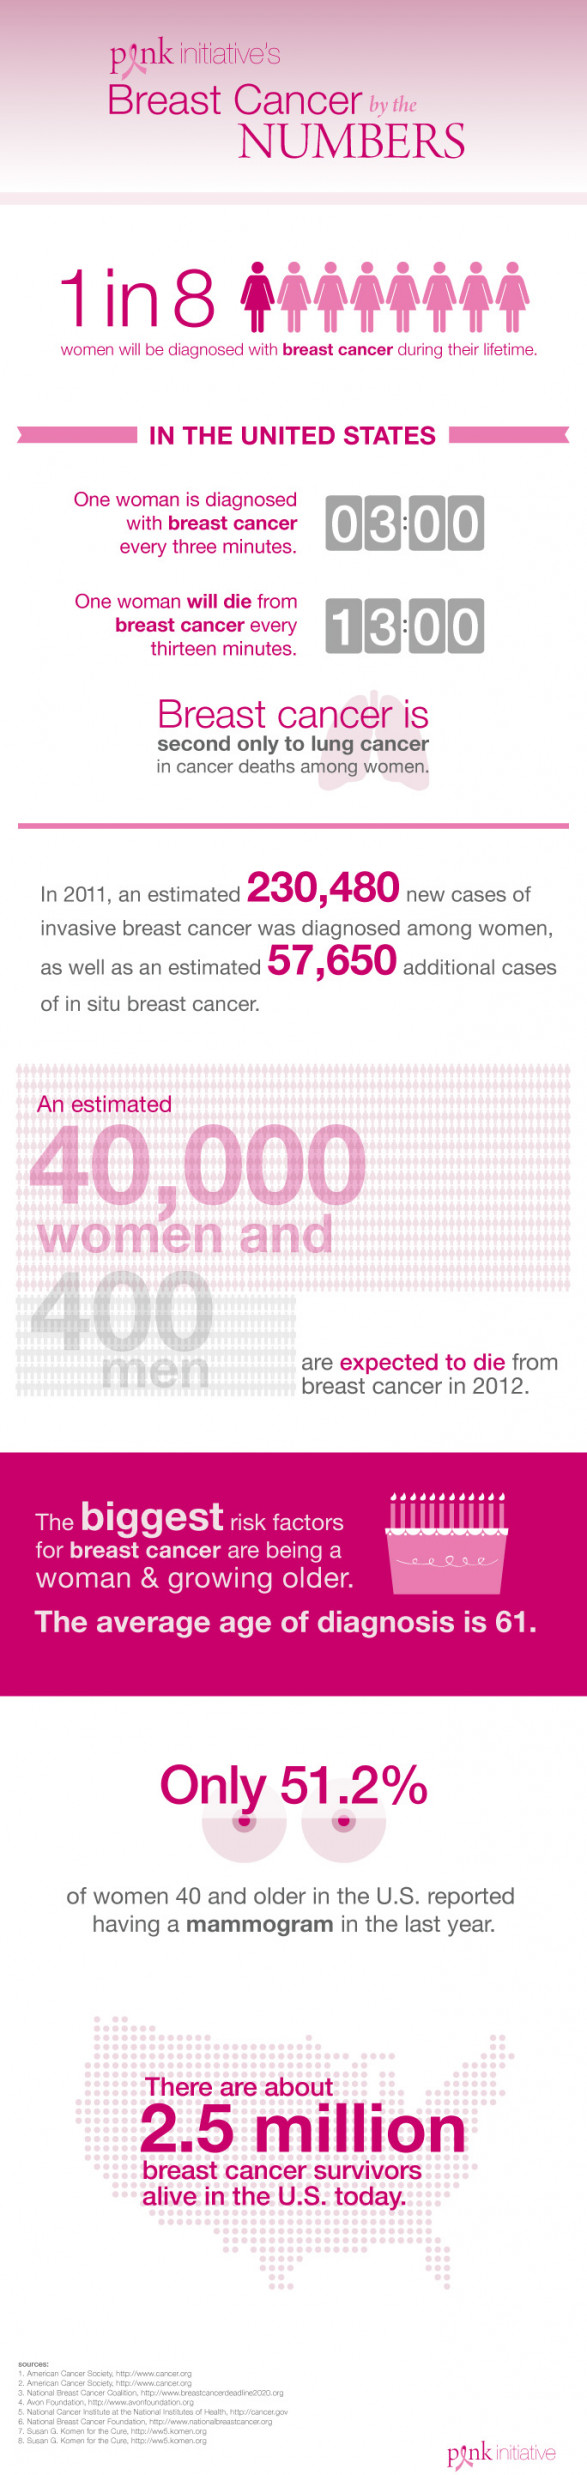 Facts About Breast Cancer (Infographic)